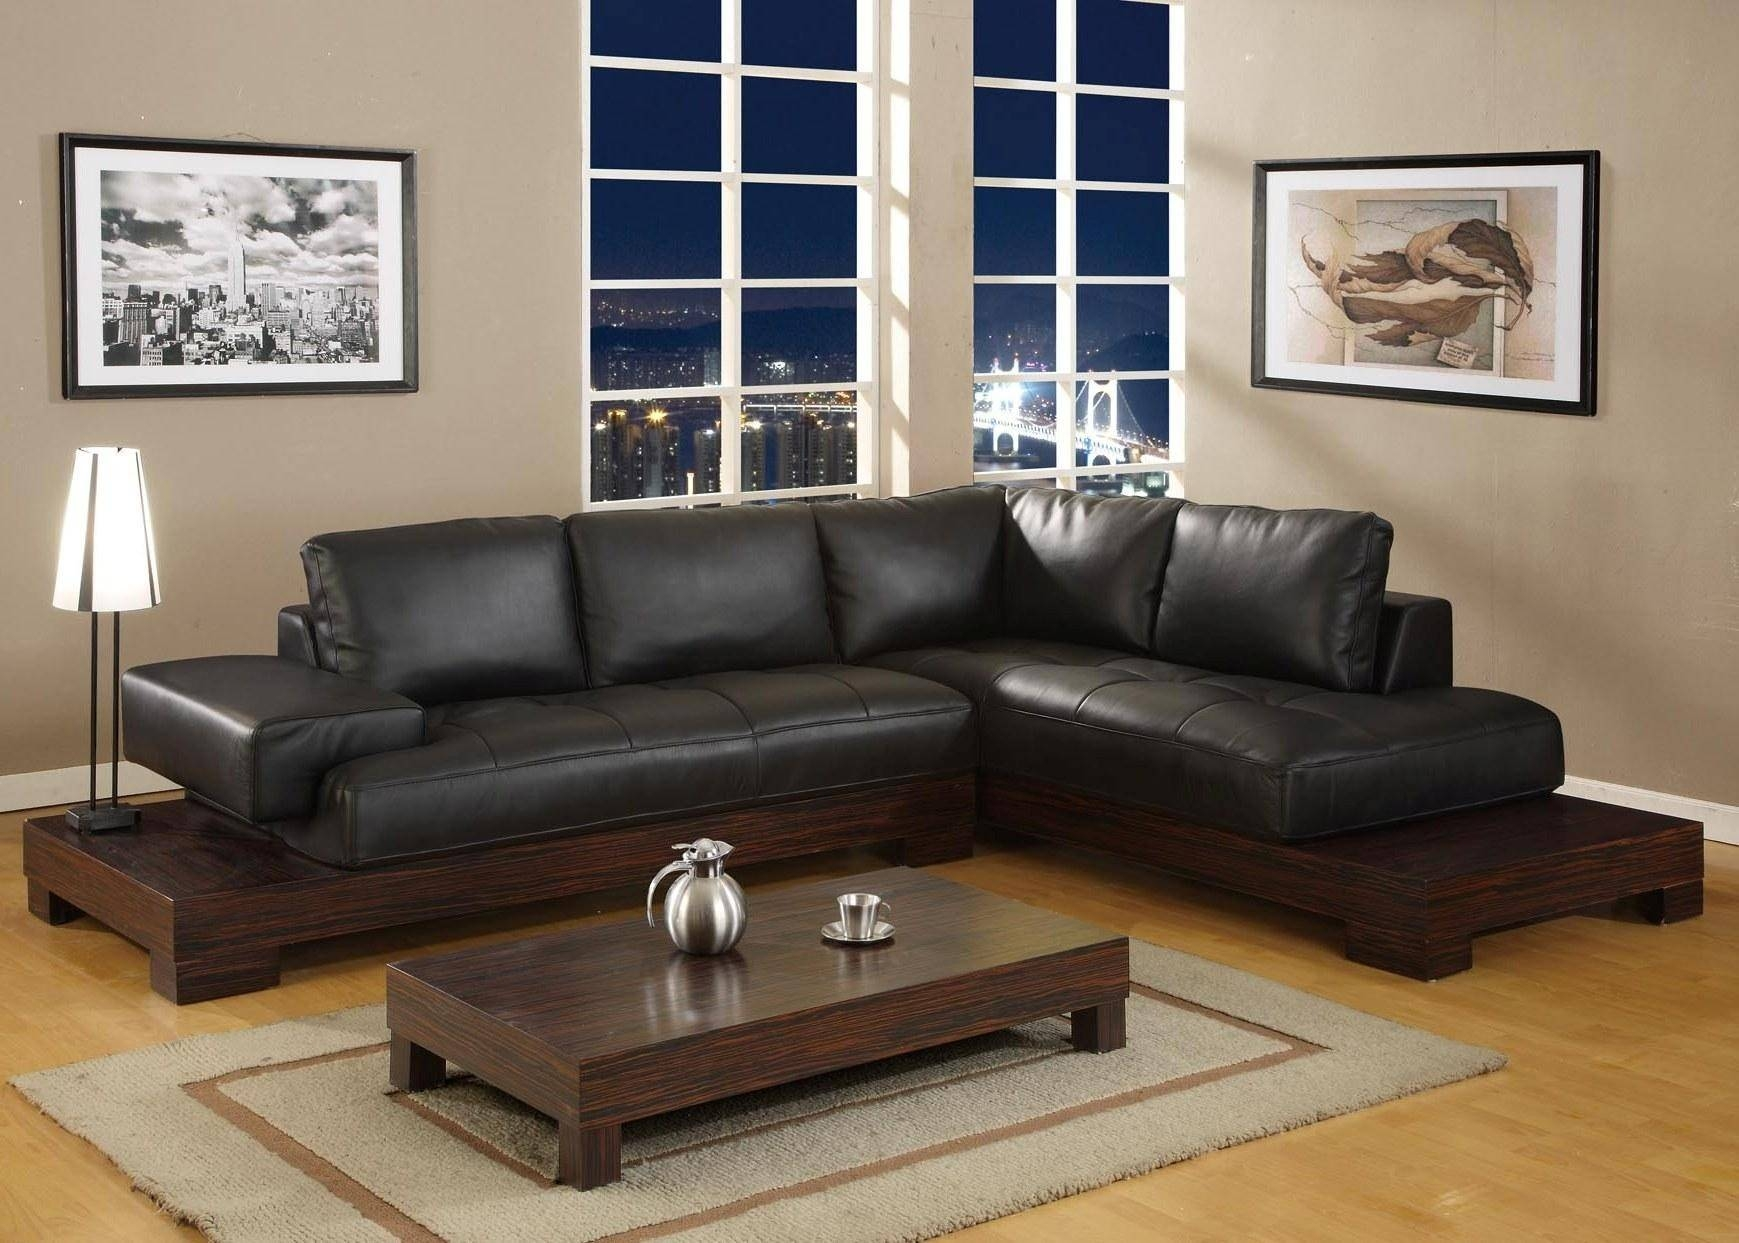 Renovate Your Home Design Studio With Fabulous Awesome Living Room for Black Sofas for Living Room (Image 12 of 15)